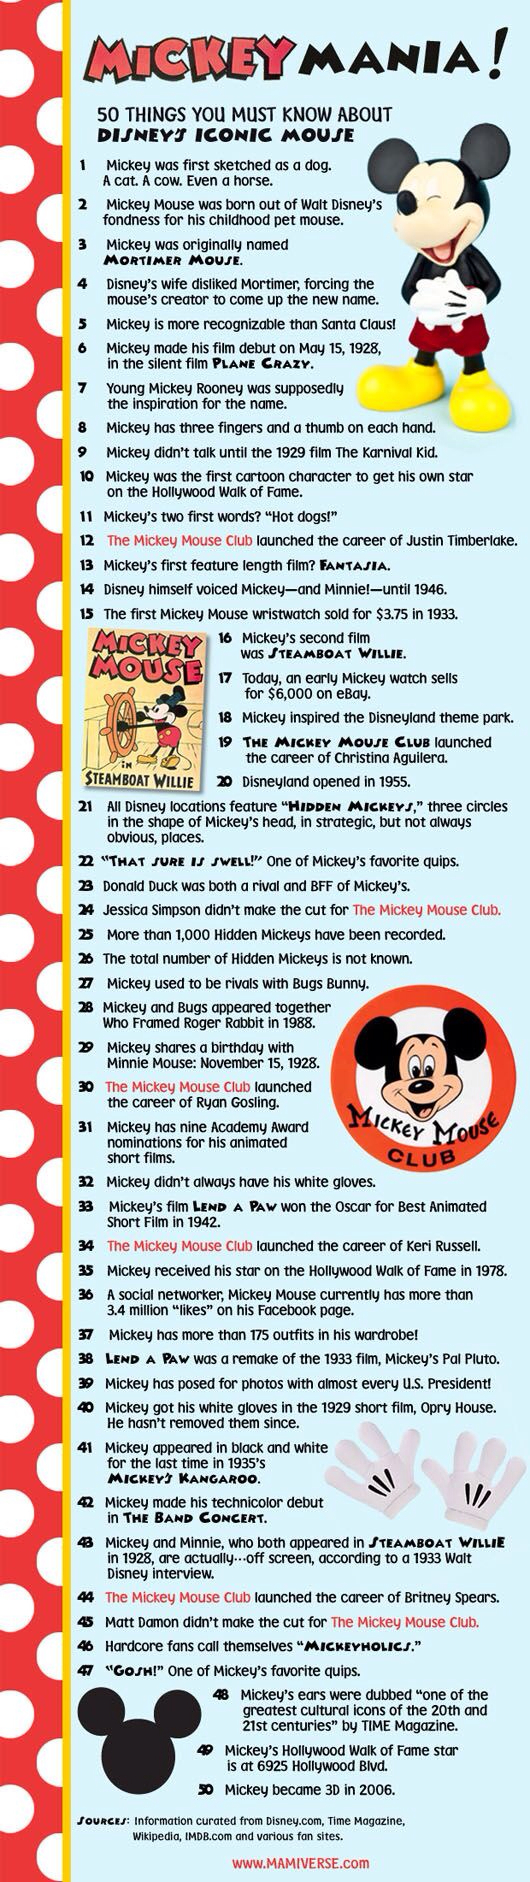 Facts About Mickey Mouse Disney Fun Facts Disney Mickey Disney Facts